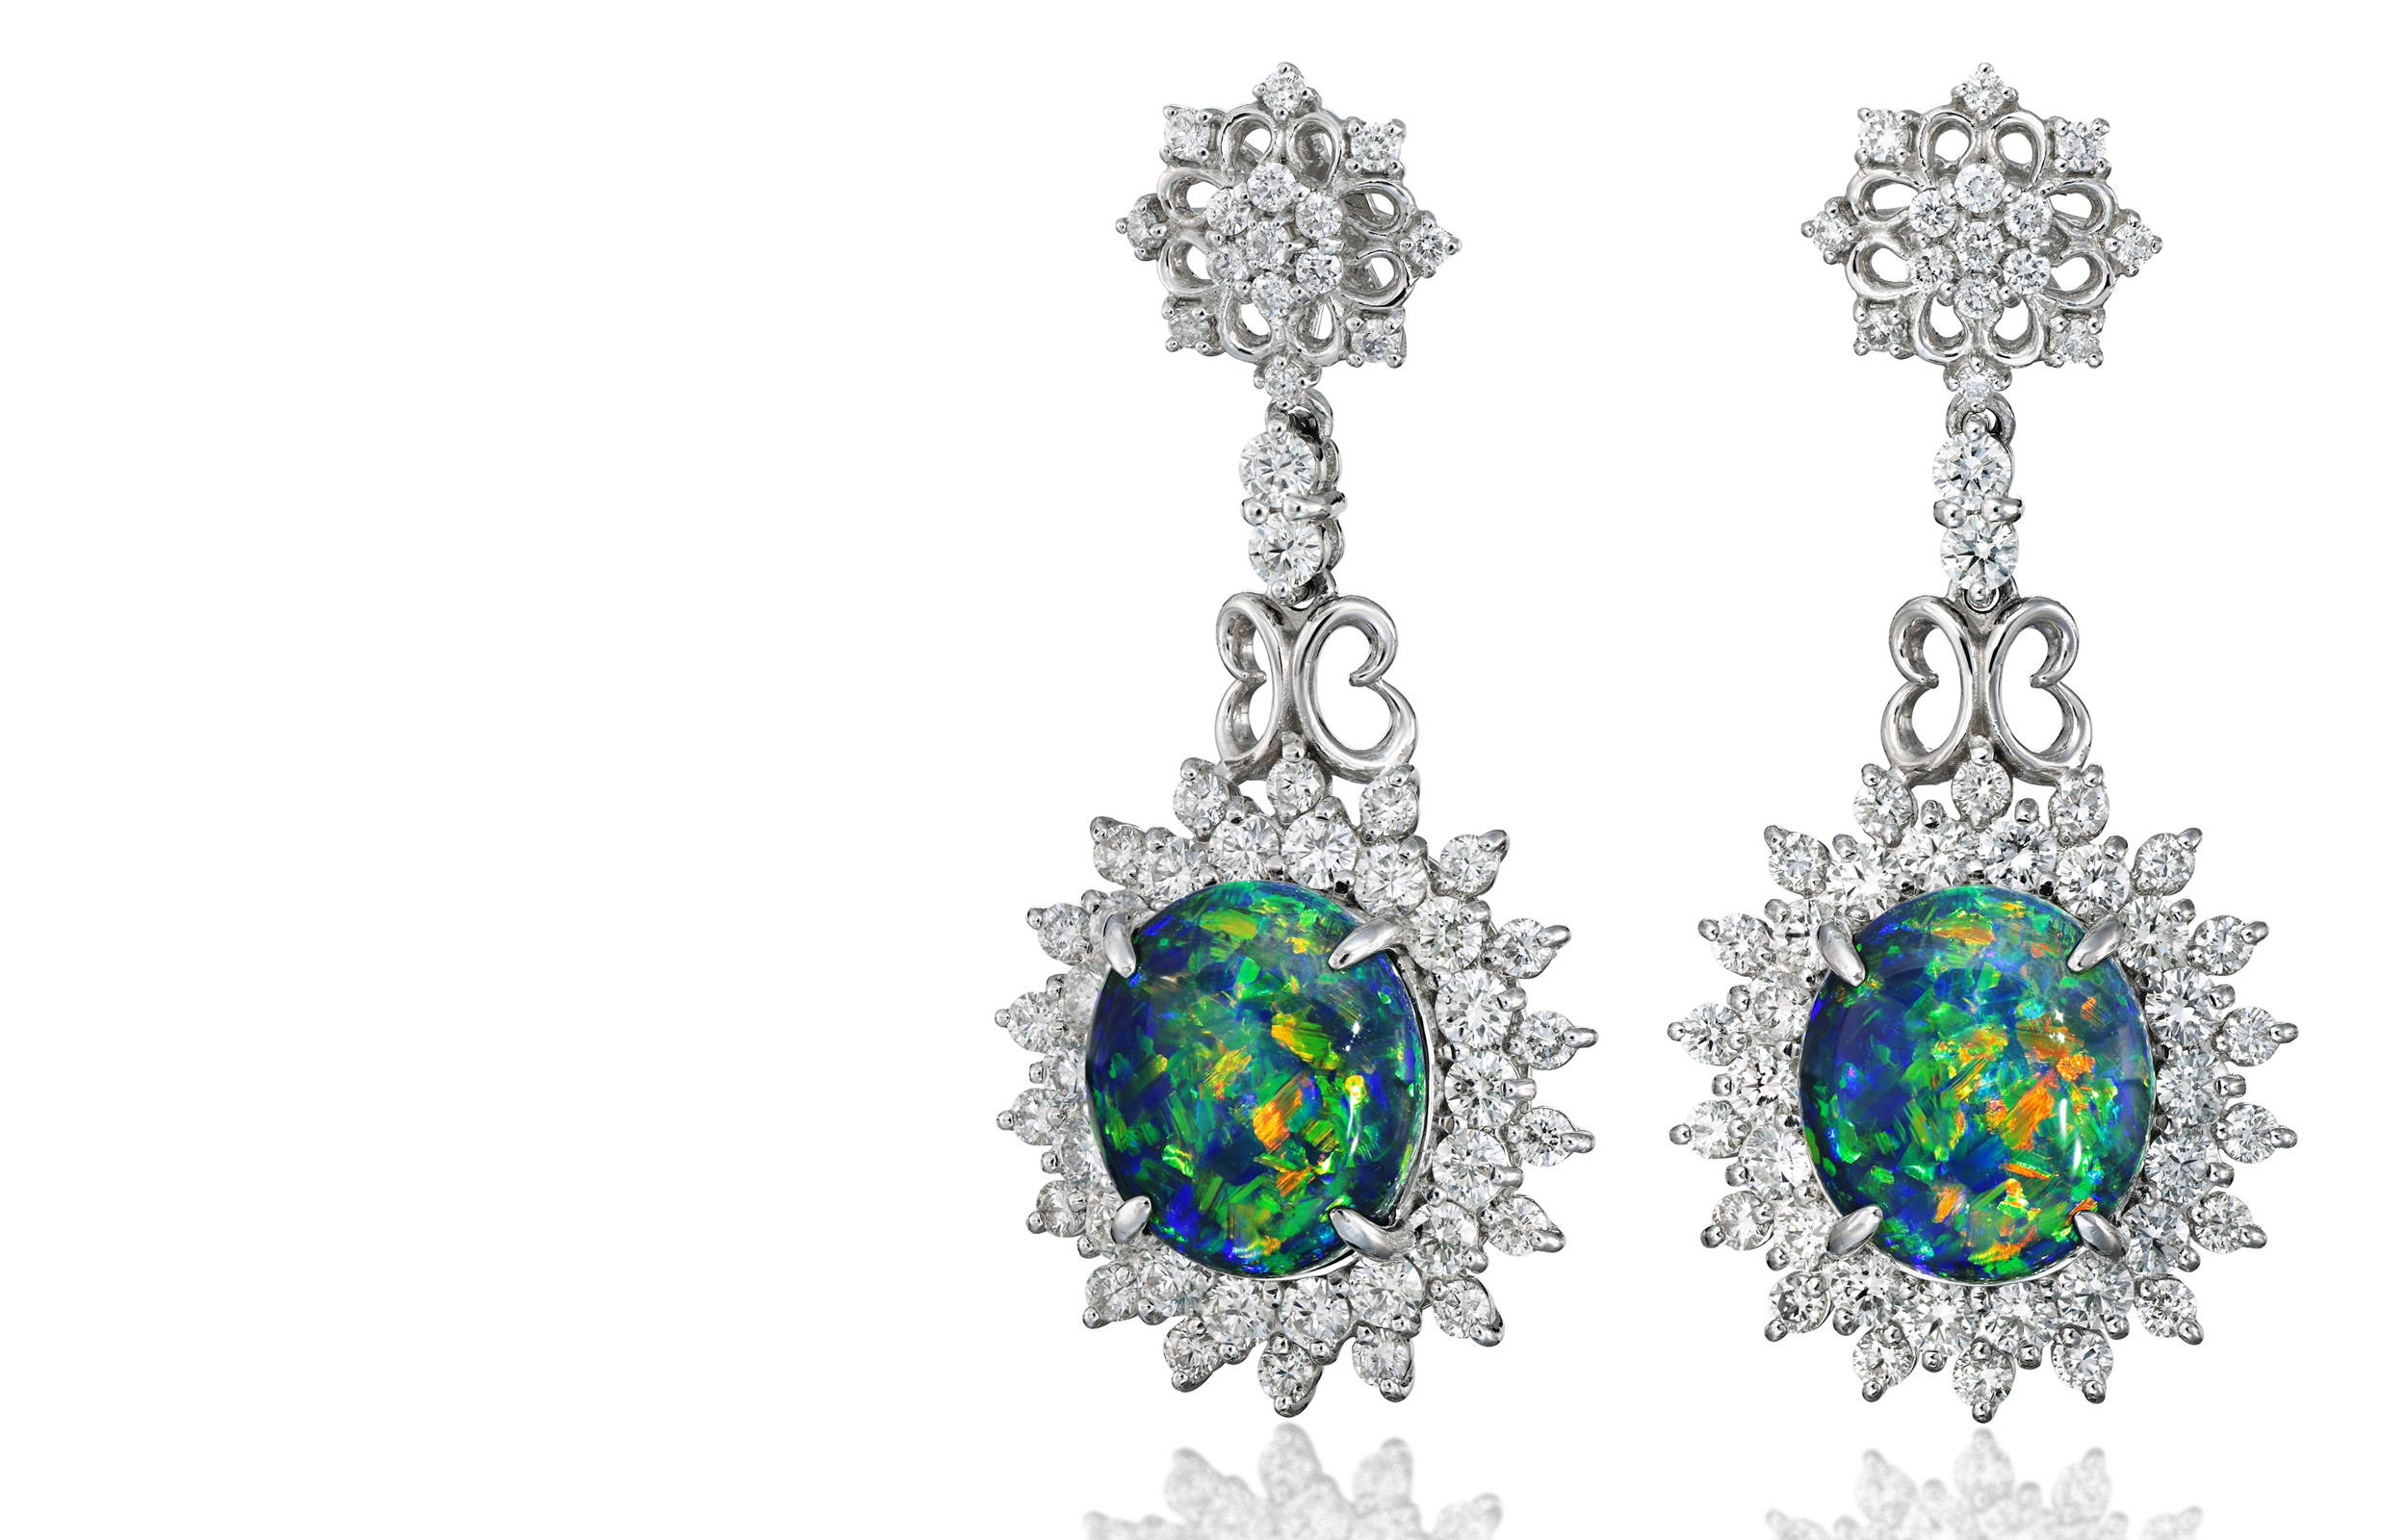 Opal_Diamond_Pierced_Earrings_Photo_Stuido_IS_Greenvader_toppage_image